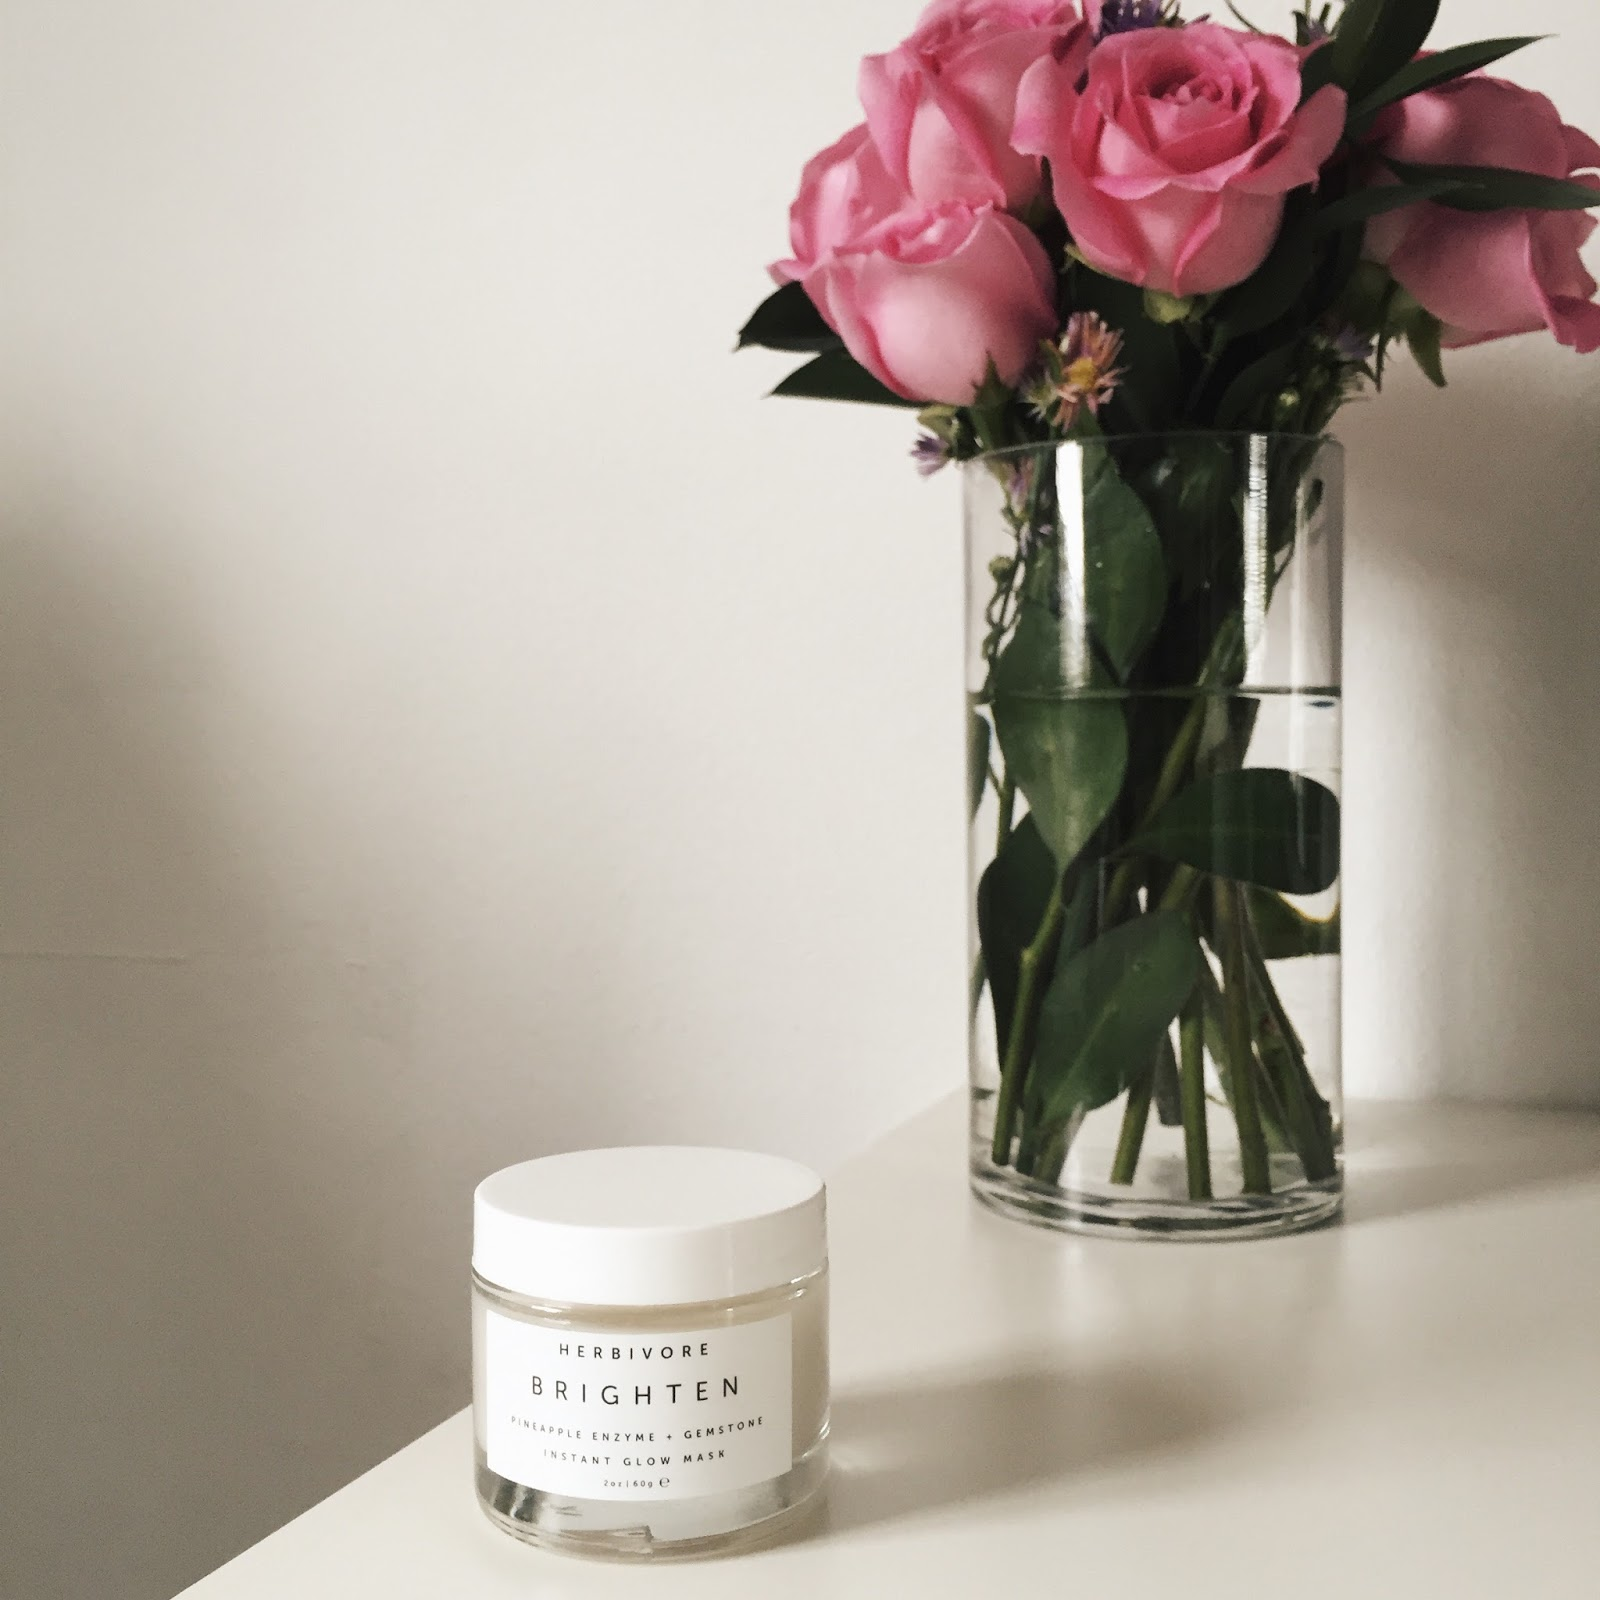 Herbivore Botanicals Brighten Pineapple + Gemstone Mask Review